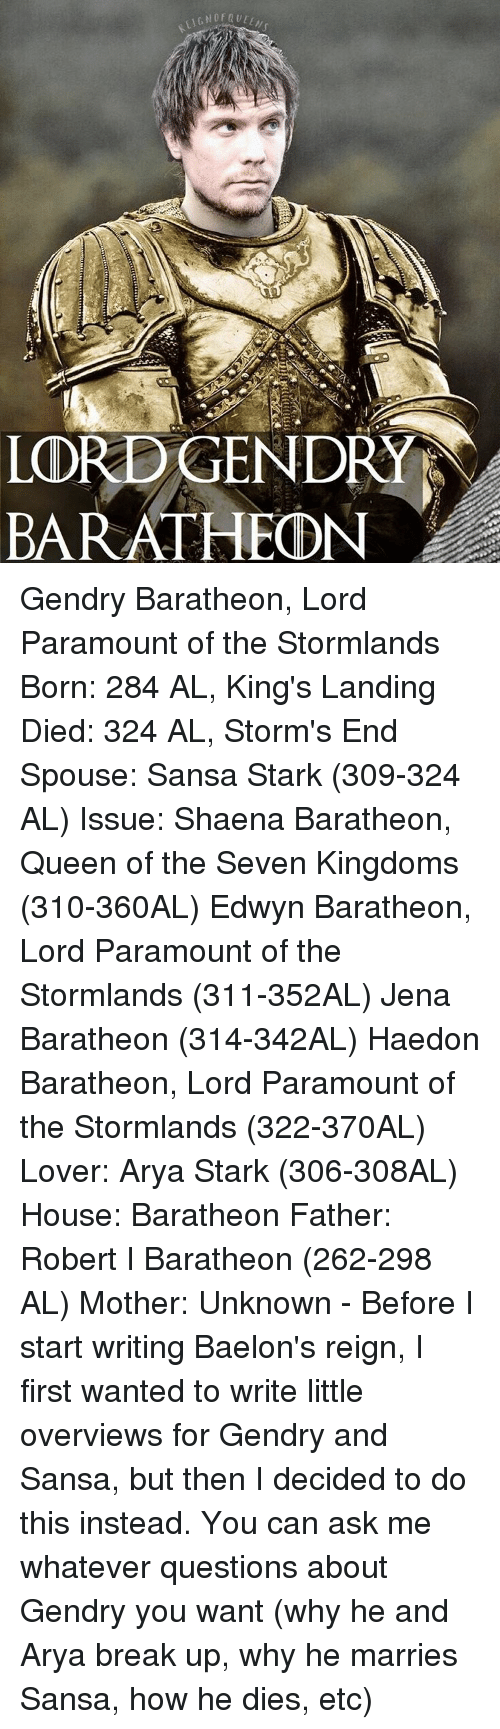 Memes, Sansa Stark, and Seven Kingdoms: LORDGENDRY  ATHEDNI  BARA Gendry Baratheon, Lord Paramount of the Stormlands Born: 284 AL, King's Landing Died: 324 AL, Storm's End Spouse: Sansa Stark (309-324 AL) Issue: Shaena Baratheon, Queen of the Seven Kingdoms (310-360AL) Edwyn Baratheon, Lord Paramount of the Stormlands (311-352AL) Jena Baratheon (314-342AL) Haedon Baratheon, Lord Paramount of the Stormlands (322-370AL) Lover: Arya Stark (306-308AL) House: Baratheon Father: Robert I Baratheon (262-298 AL) Mother: Unknown - Before I start writing Baelon's reign, I first wanted to write little overviews for Gendry and Sansa, but then I decided to do this instead. You can ask me whatever questions about Gendry you want (why he and Arya break up, why he marries Sansa, how he dies, etc)